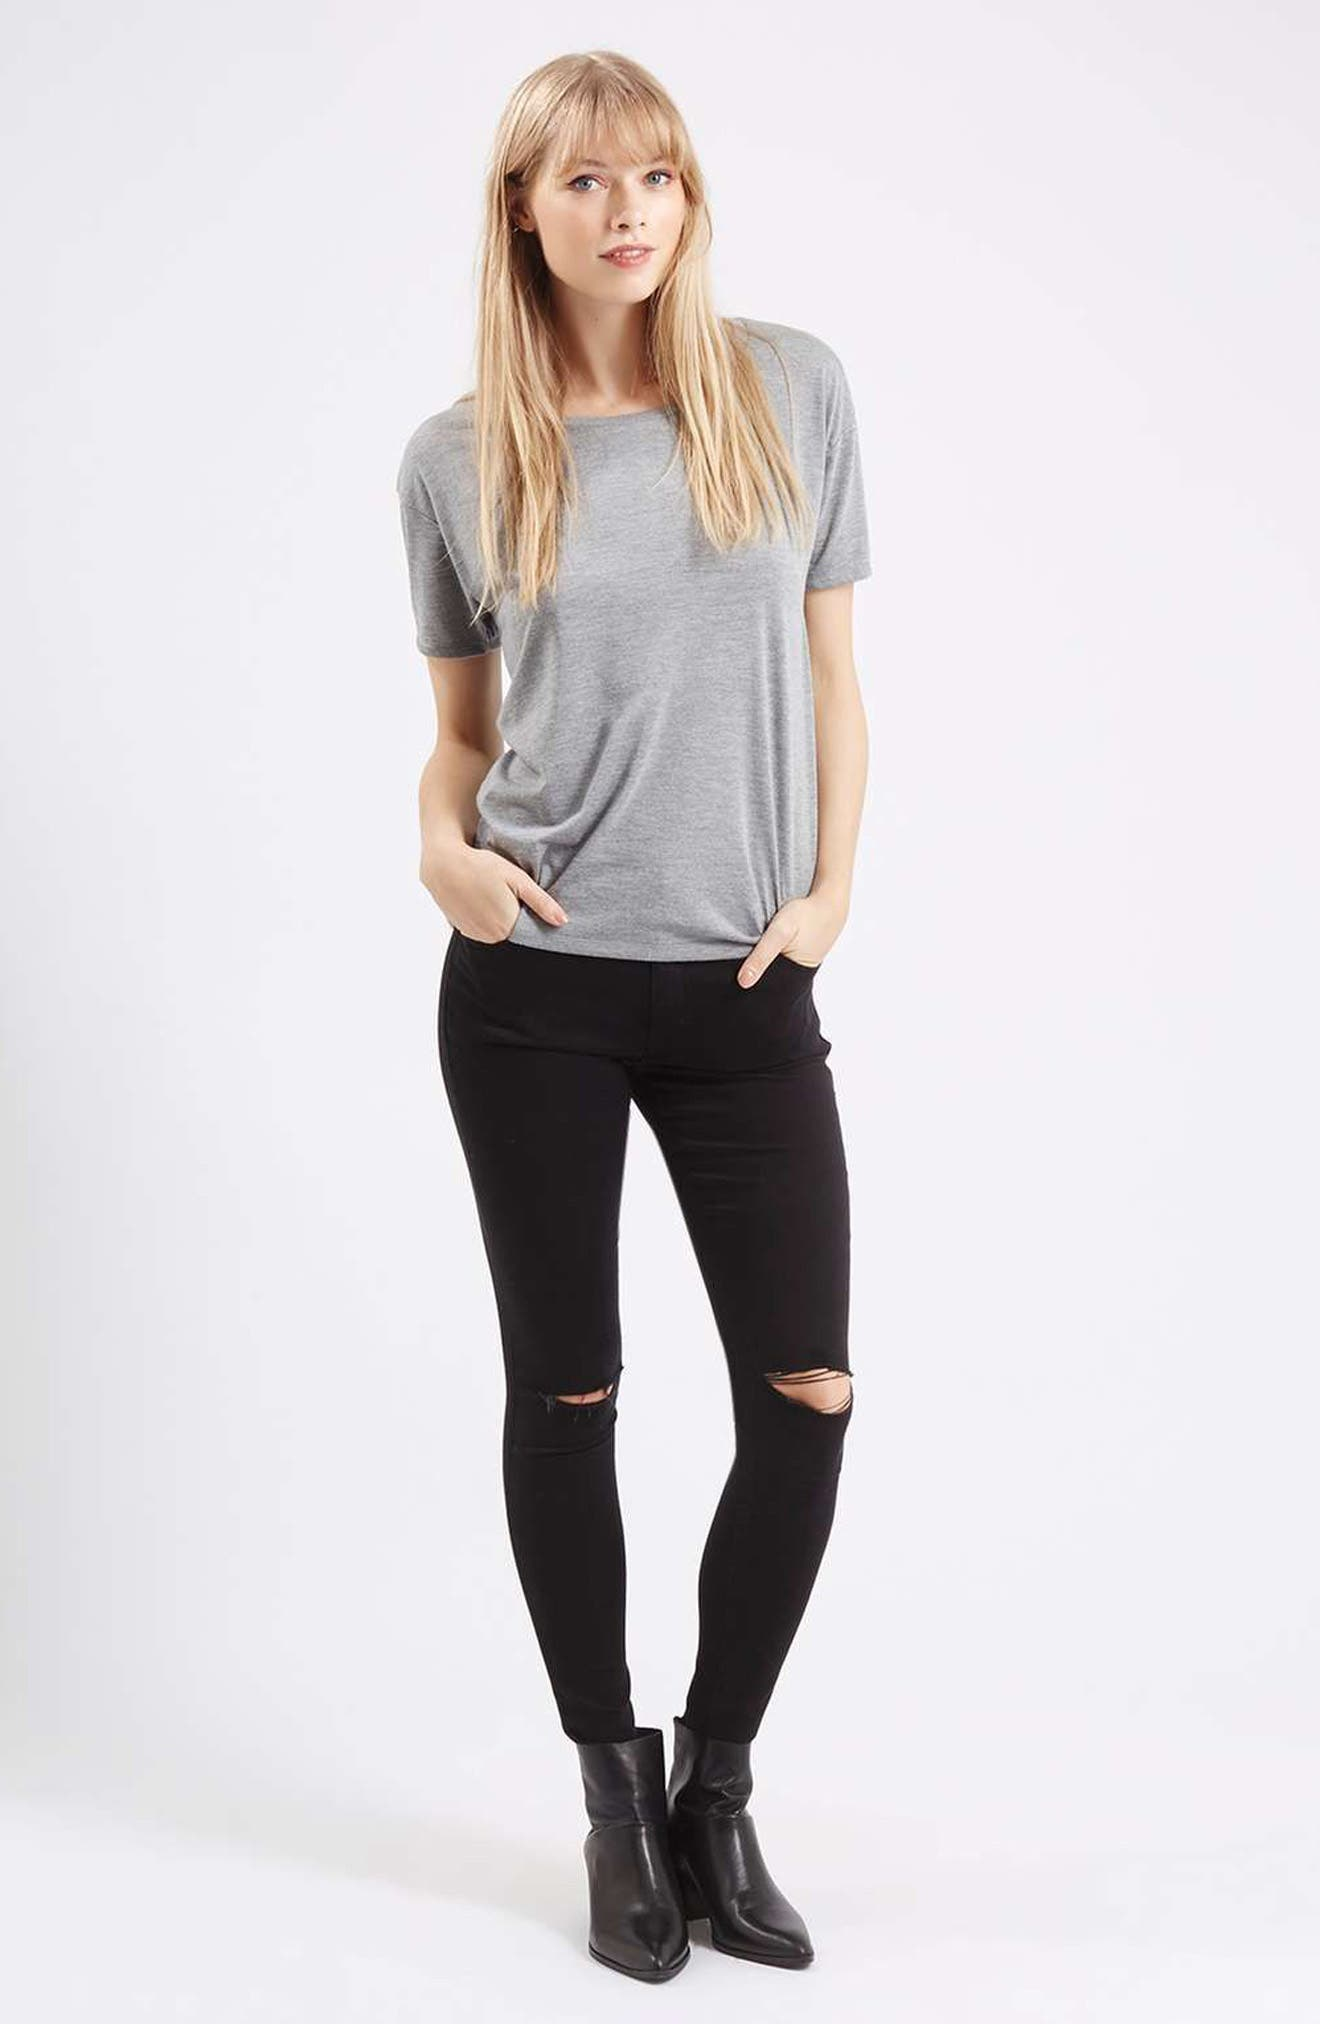 Moto Leigh Ripped Skinny Jeans,                             Alternate thumbnail 4, color,                             001